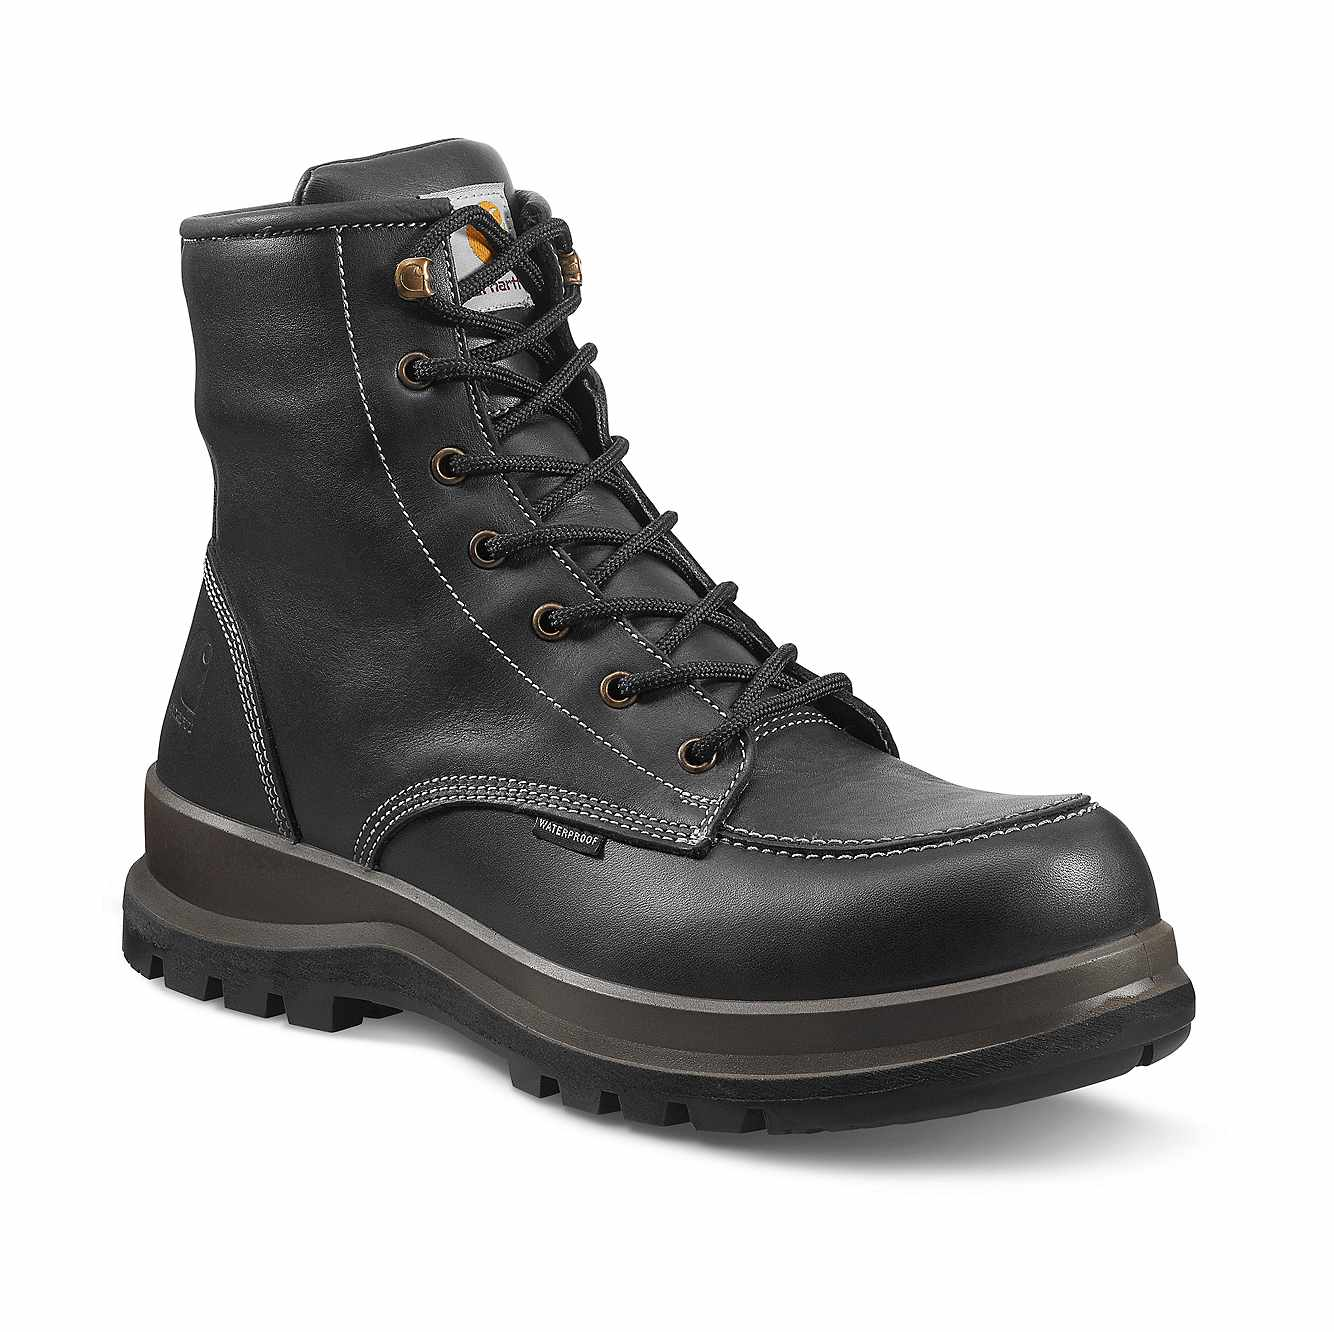 Picture of HAMILTON RUGGED FLEX® WATERPROOF S3 SAFETY BOOT